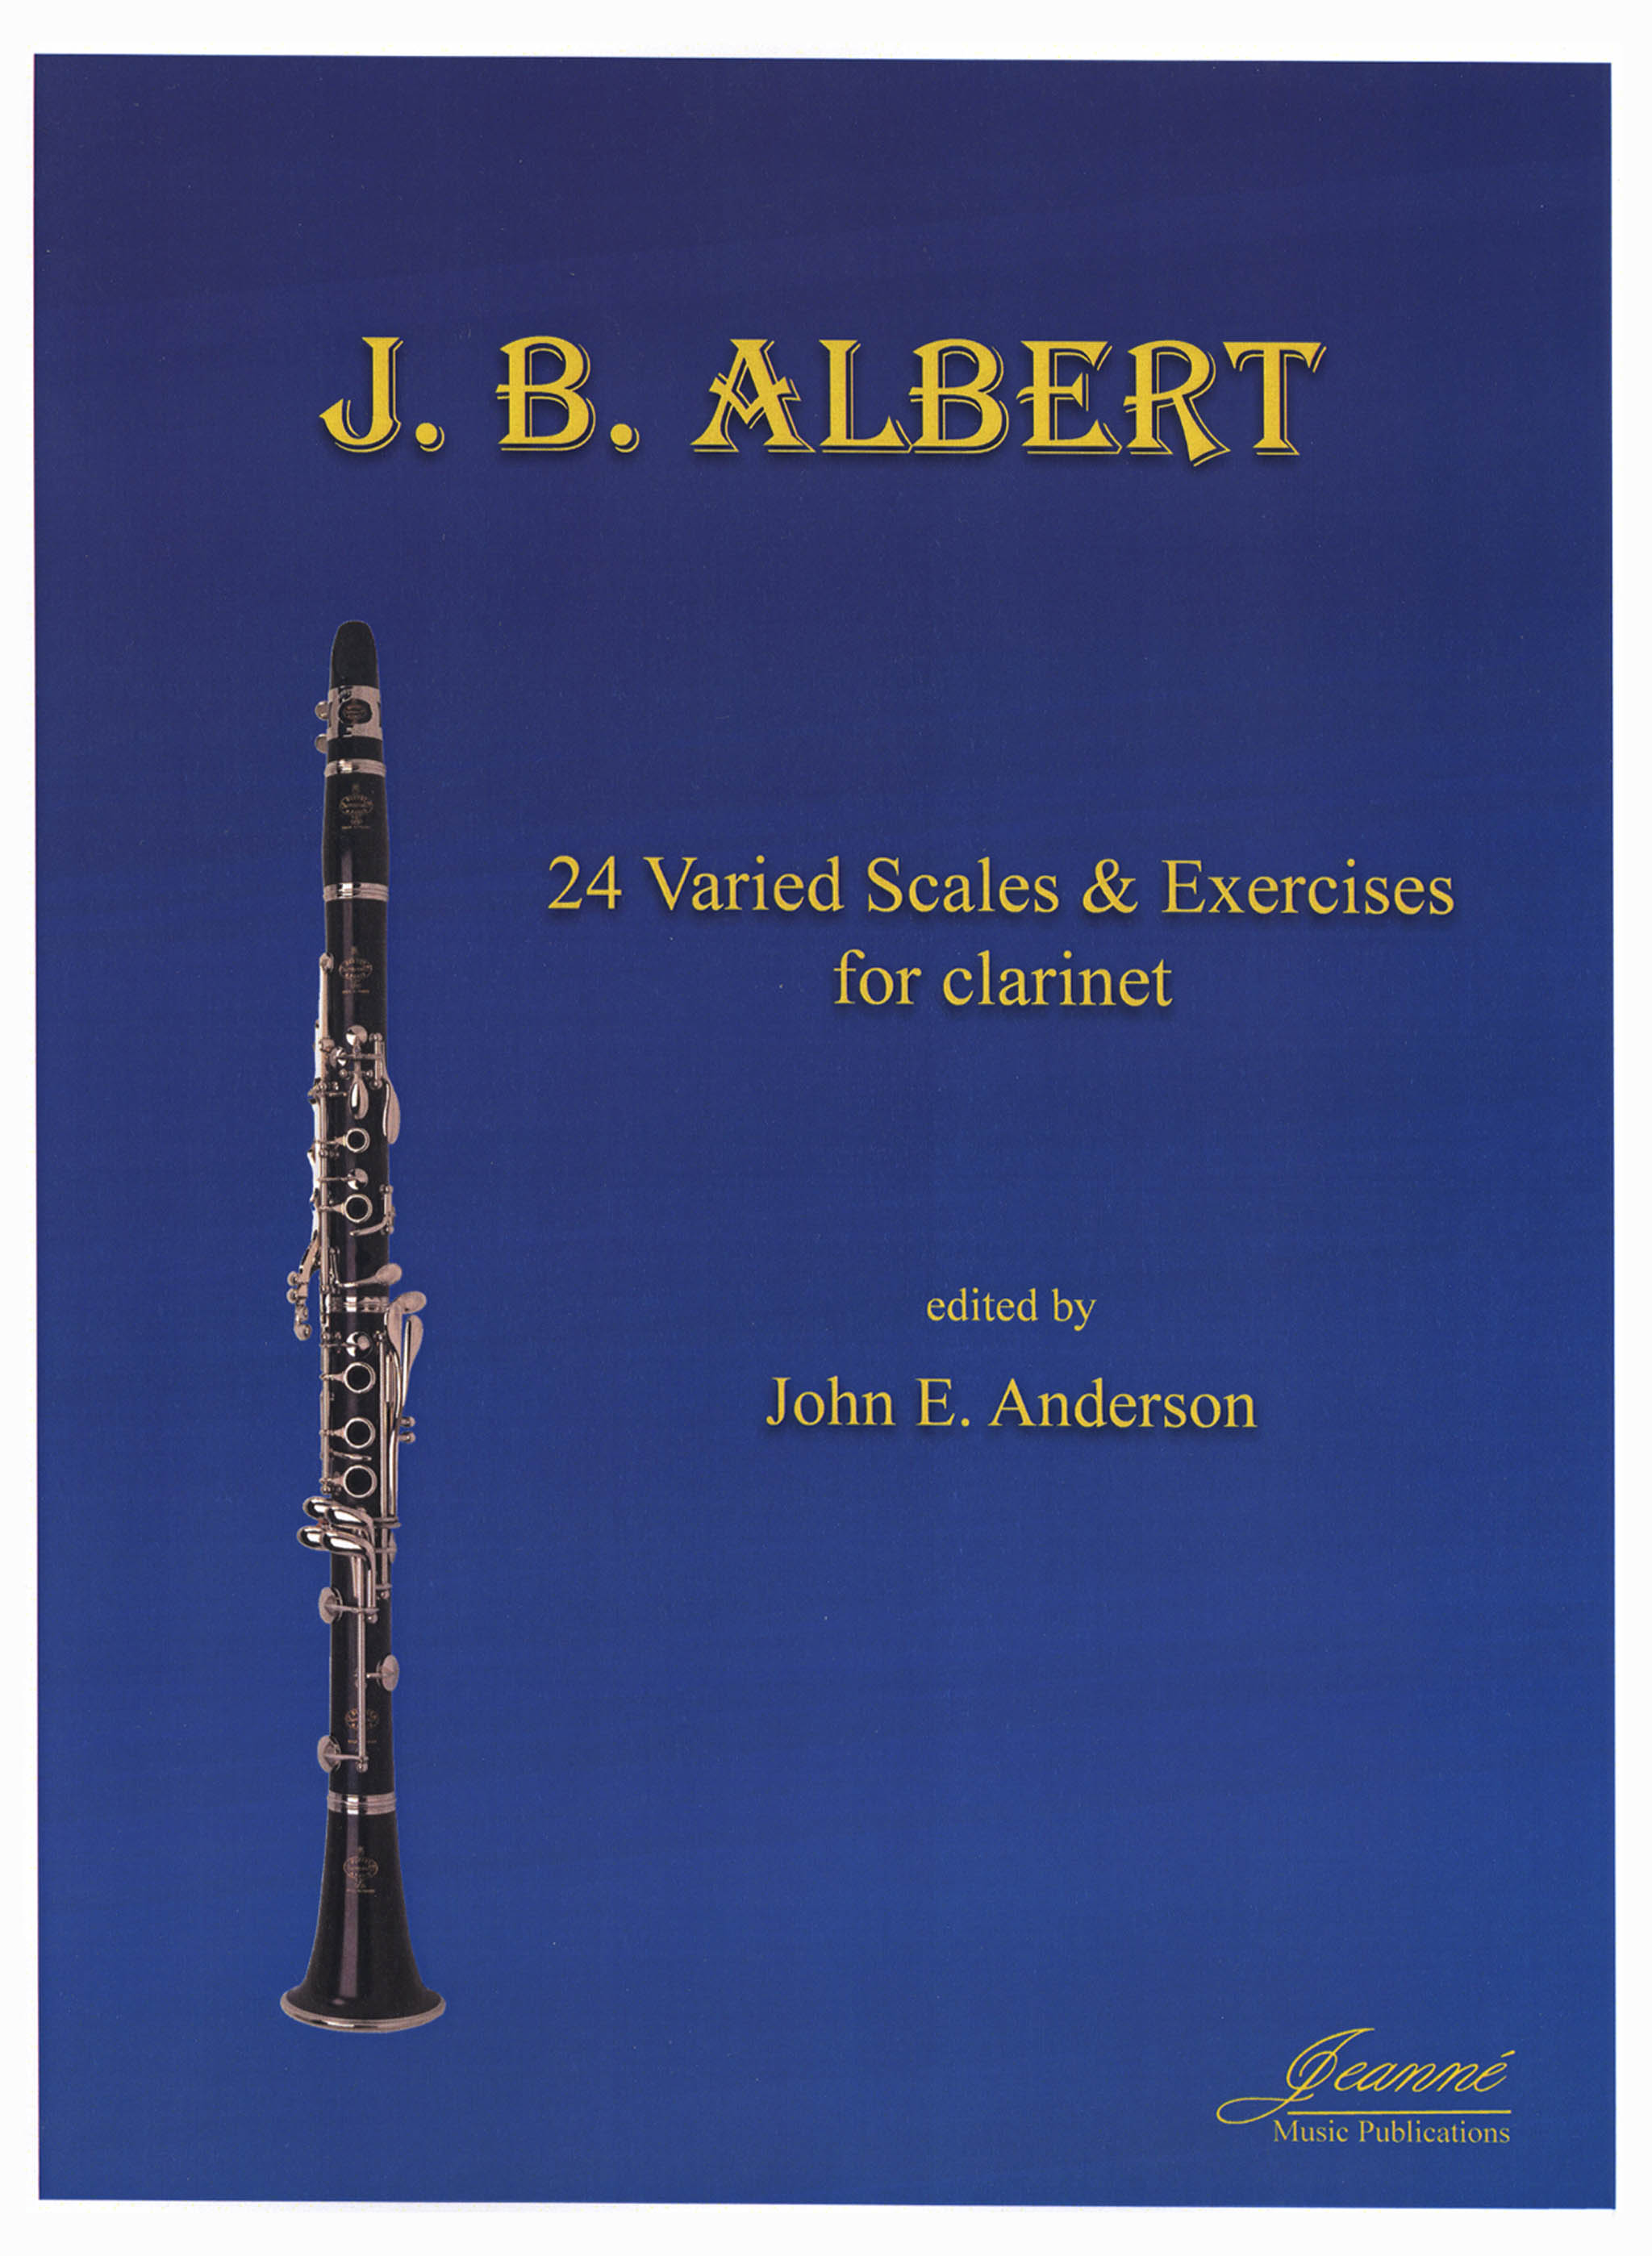 Albert 24 Varied Scales & Exercises for the Clarinet Cover